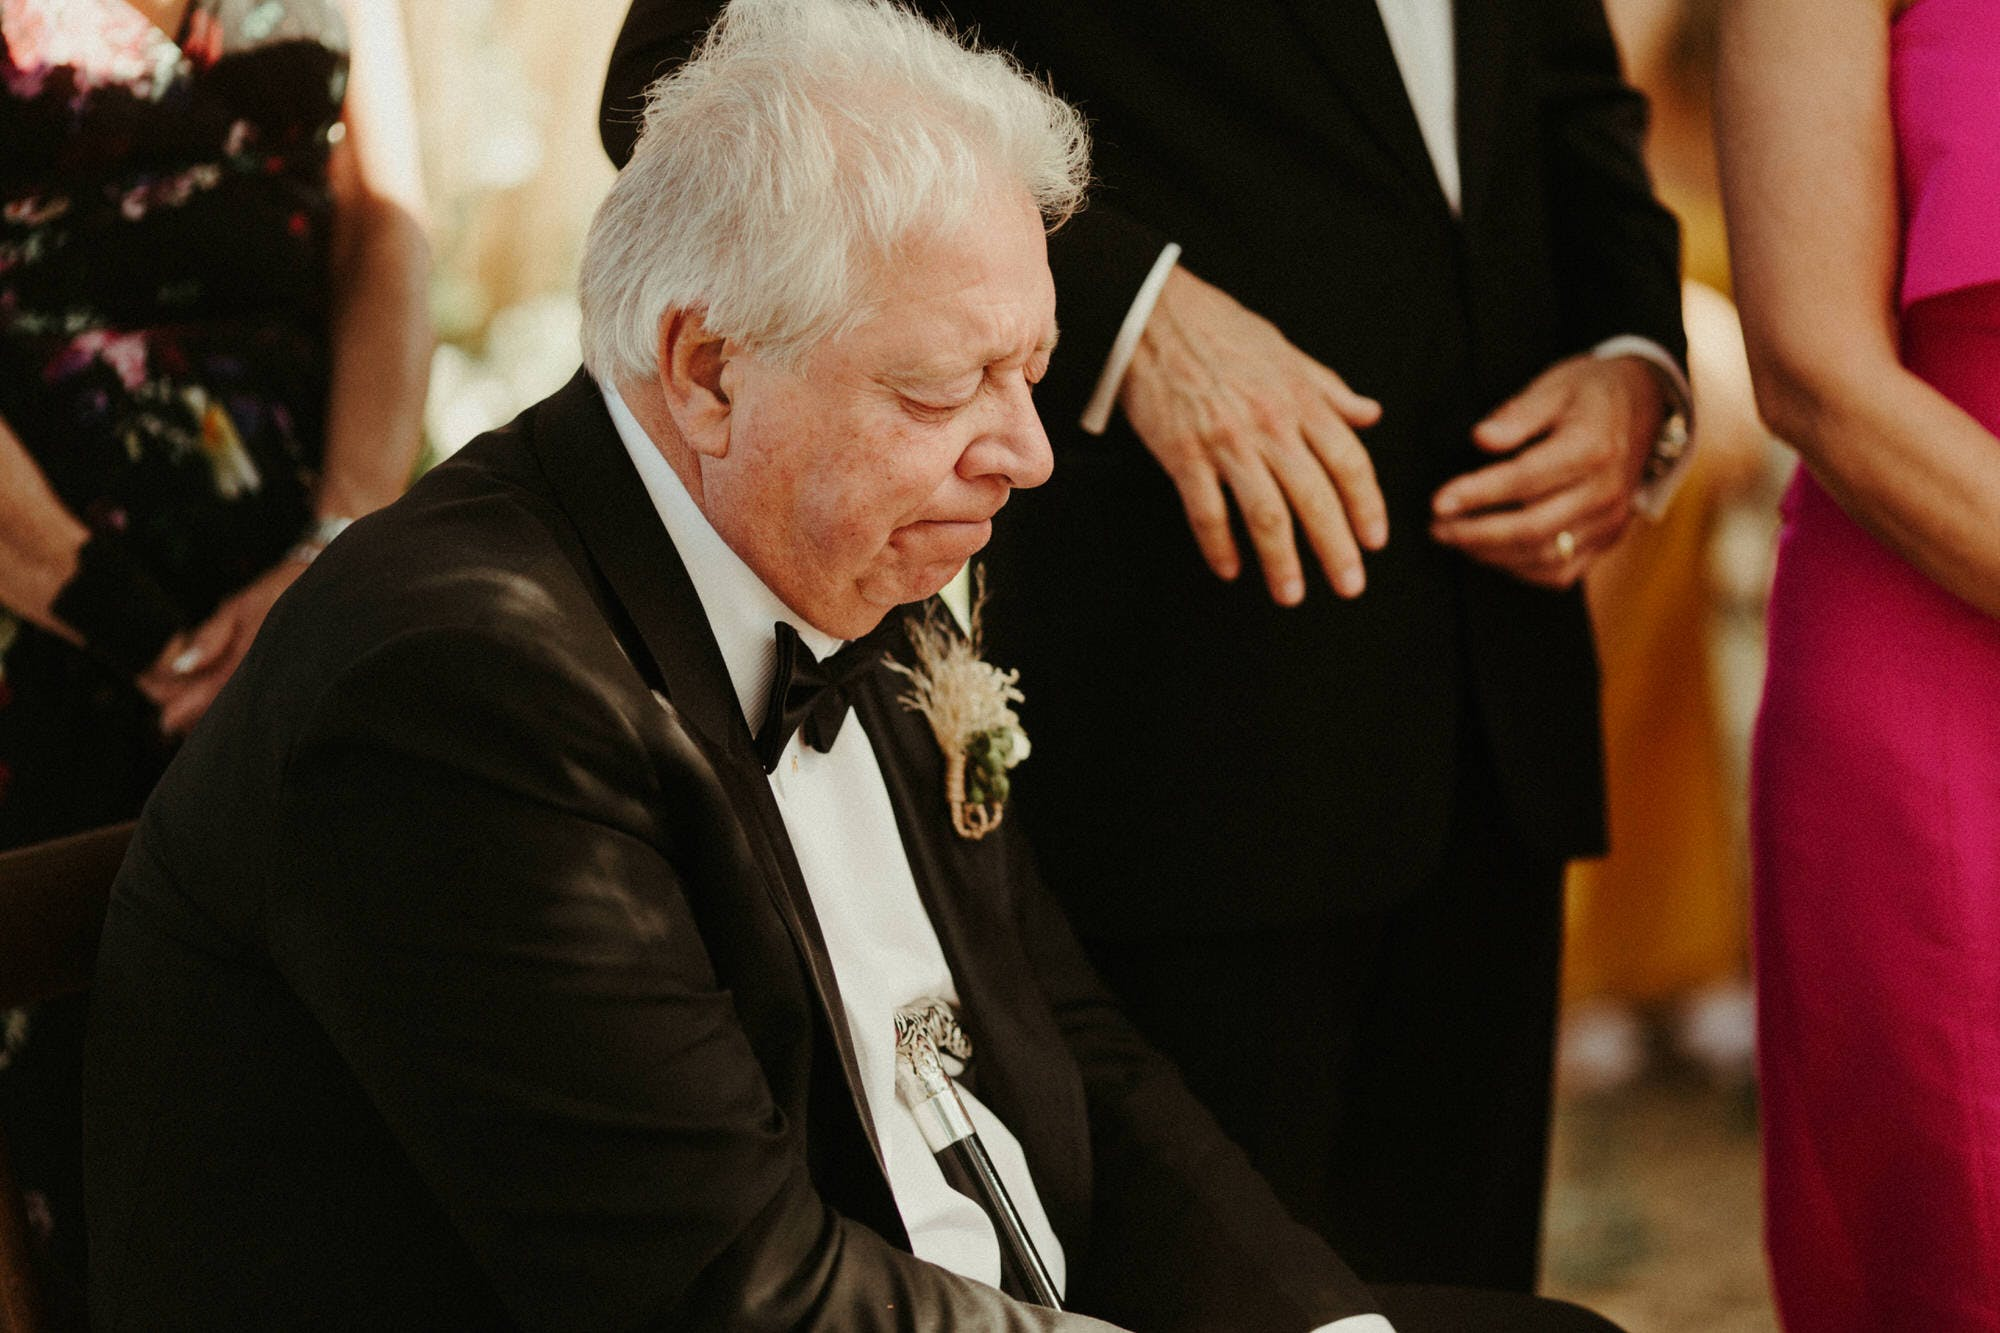 father of bride emotional at ceremony